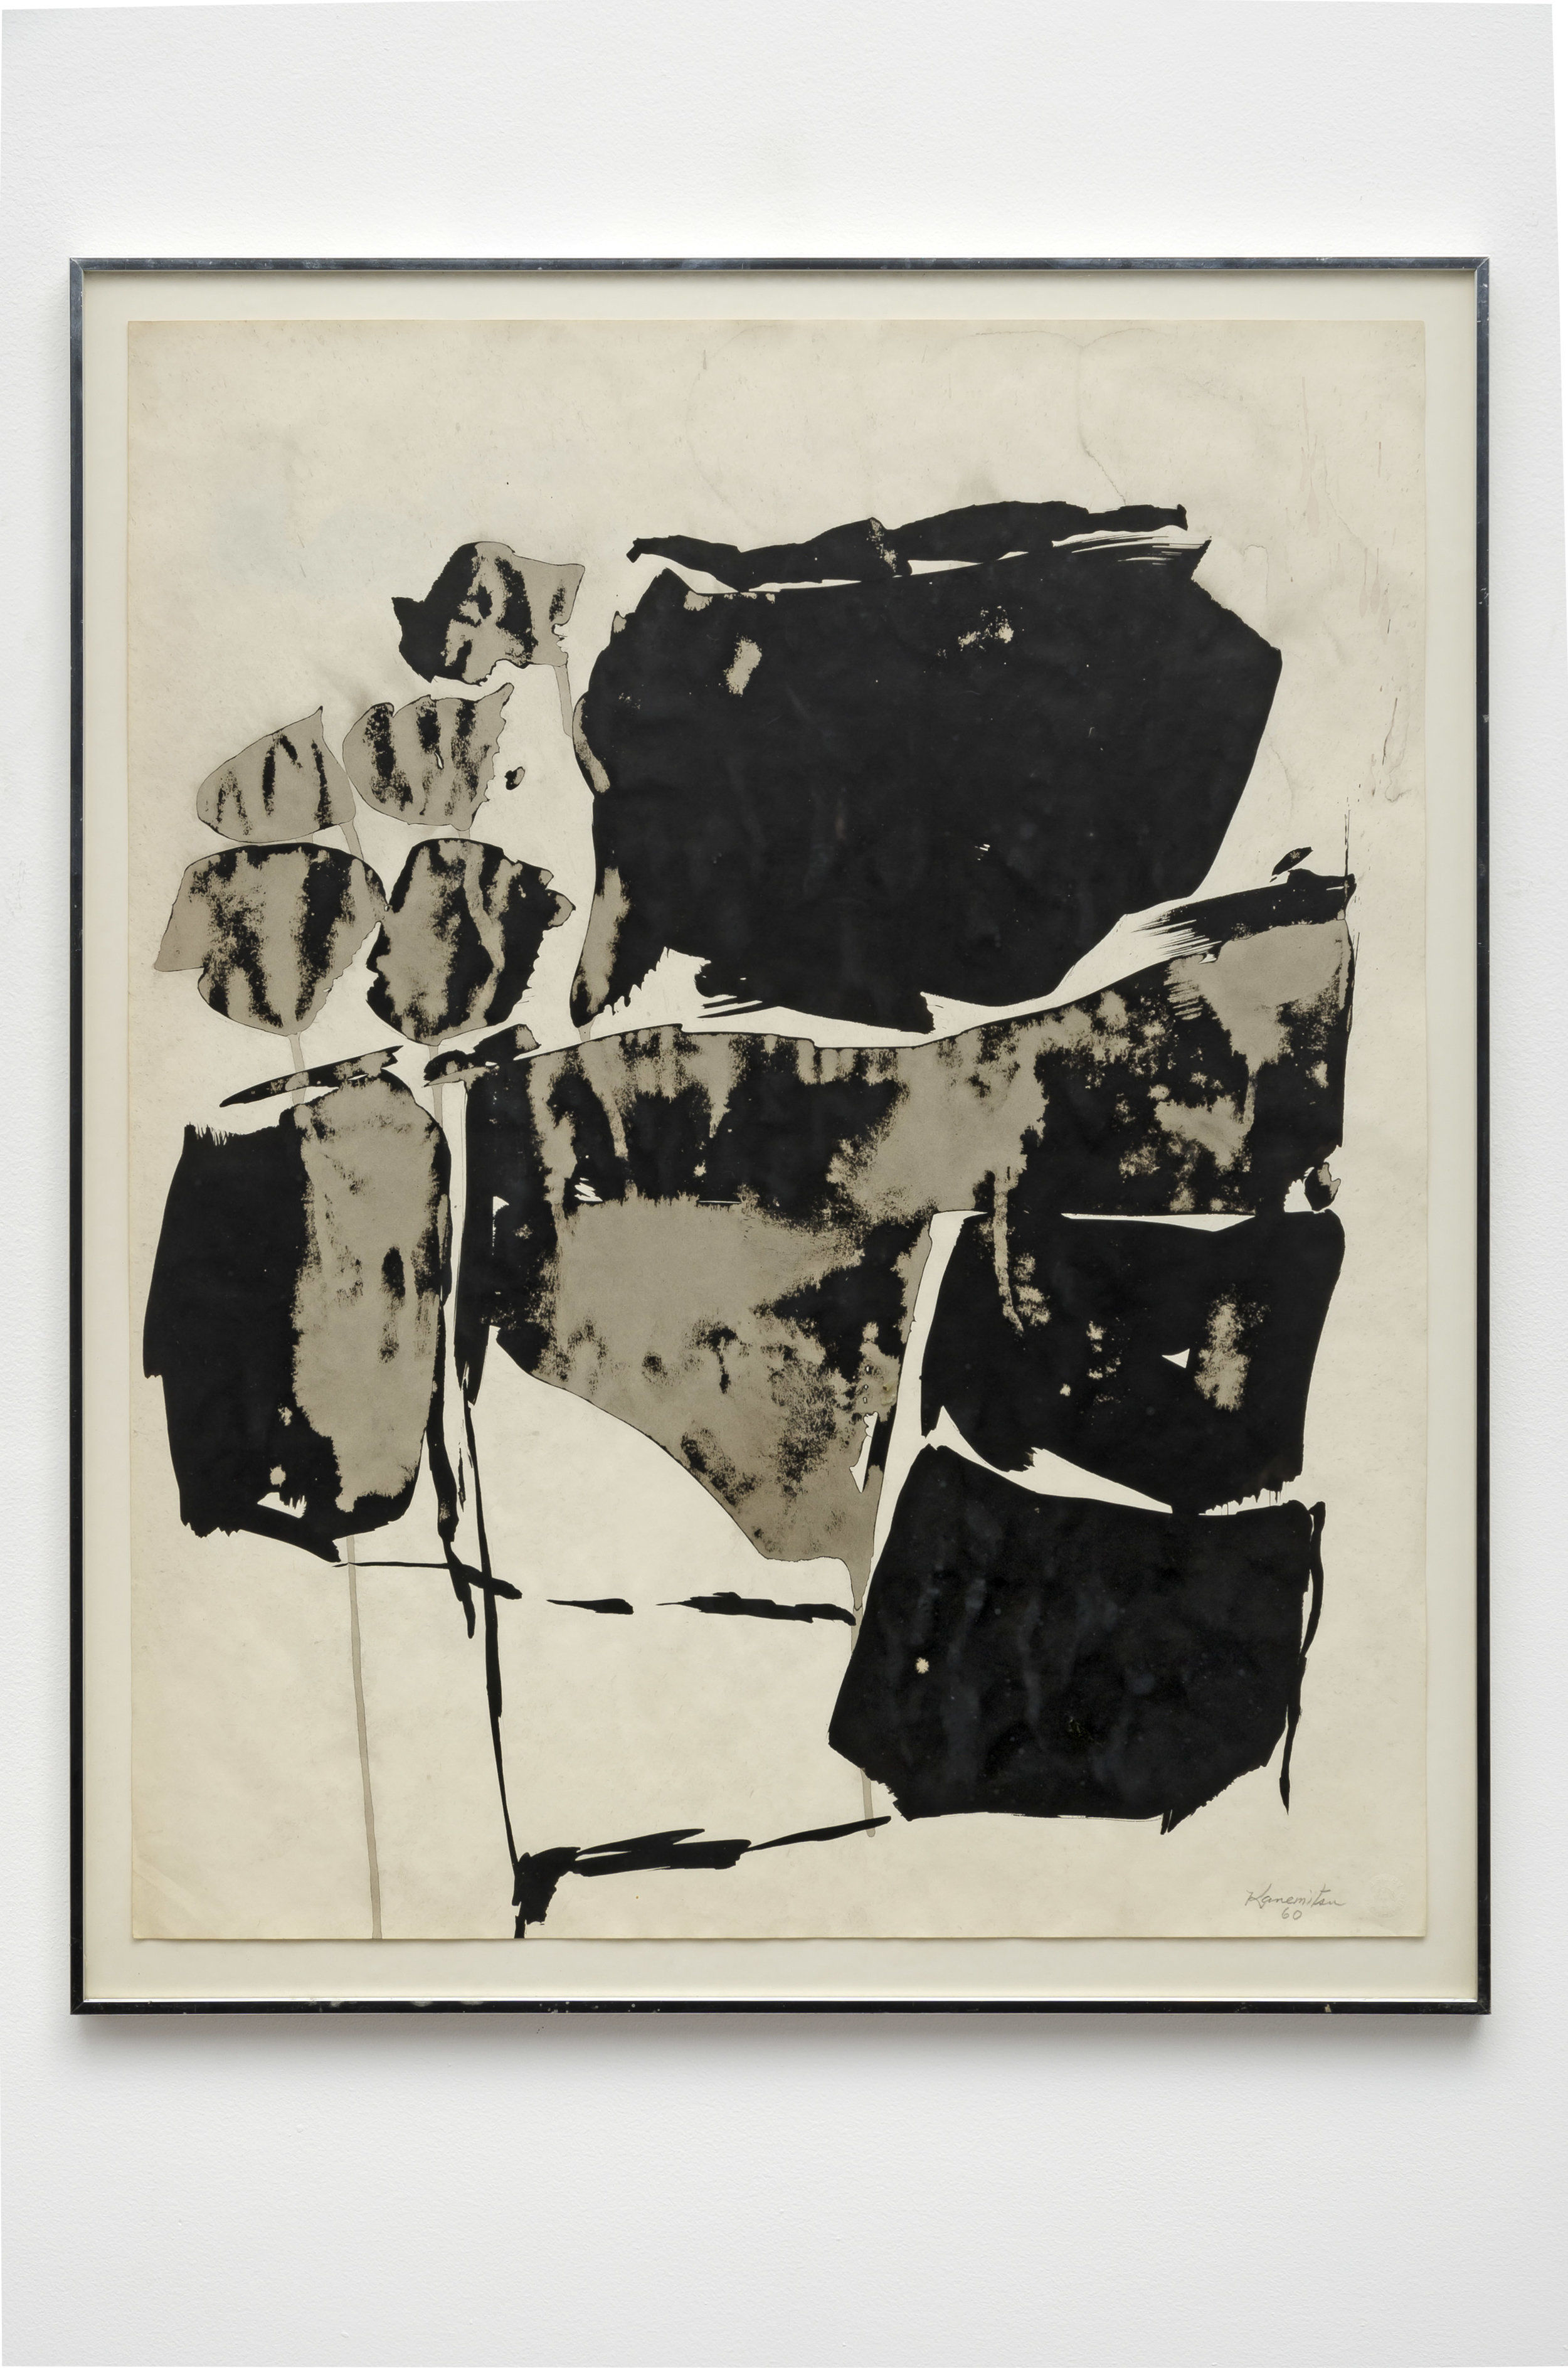 16- 20   1960  sumi ink on paper  29 x 23 inches, 73.7 x 58.4 centimeters